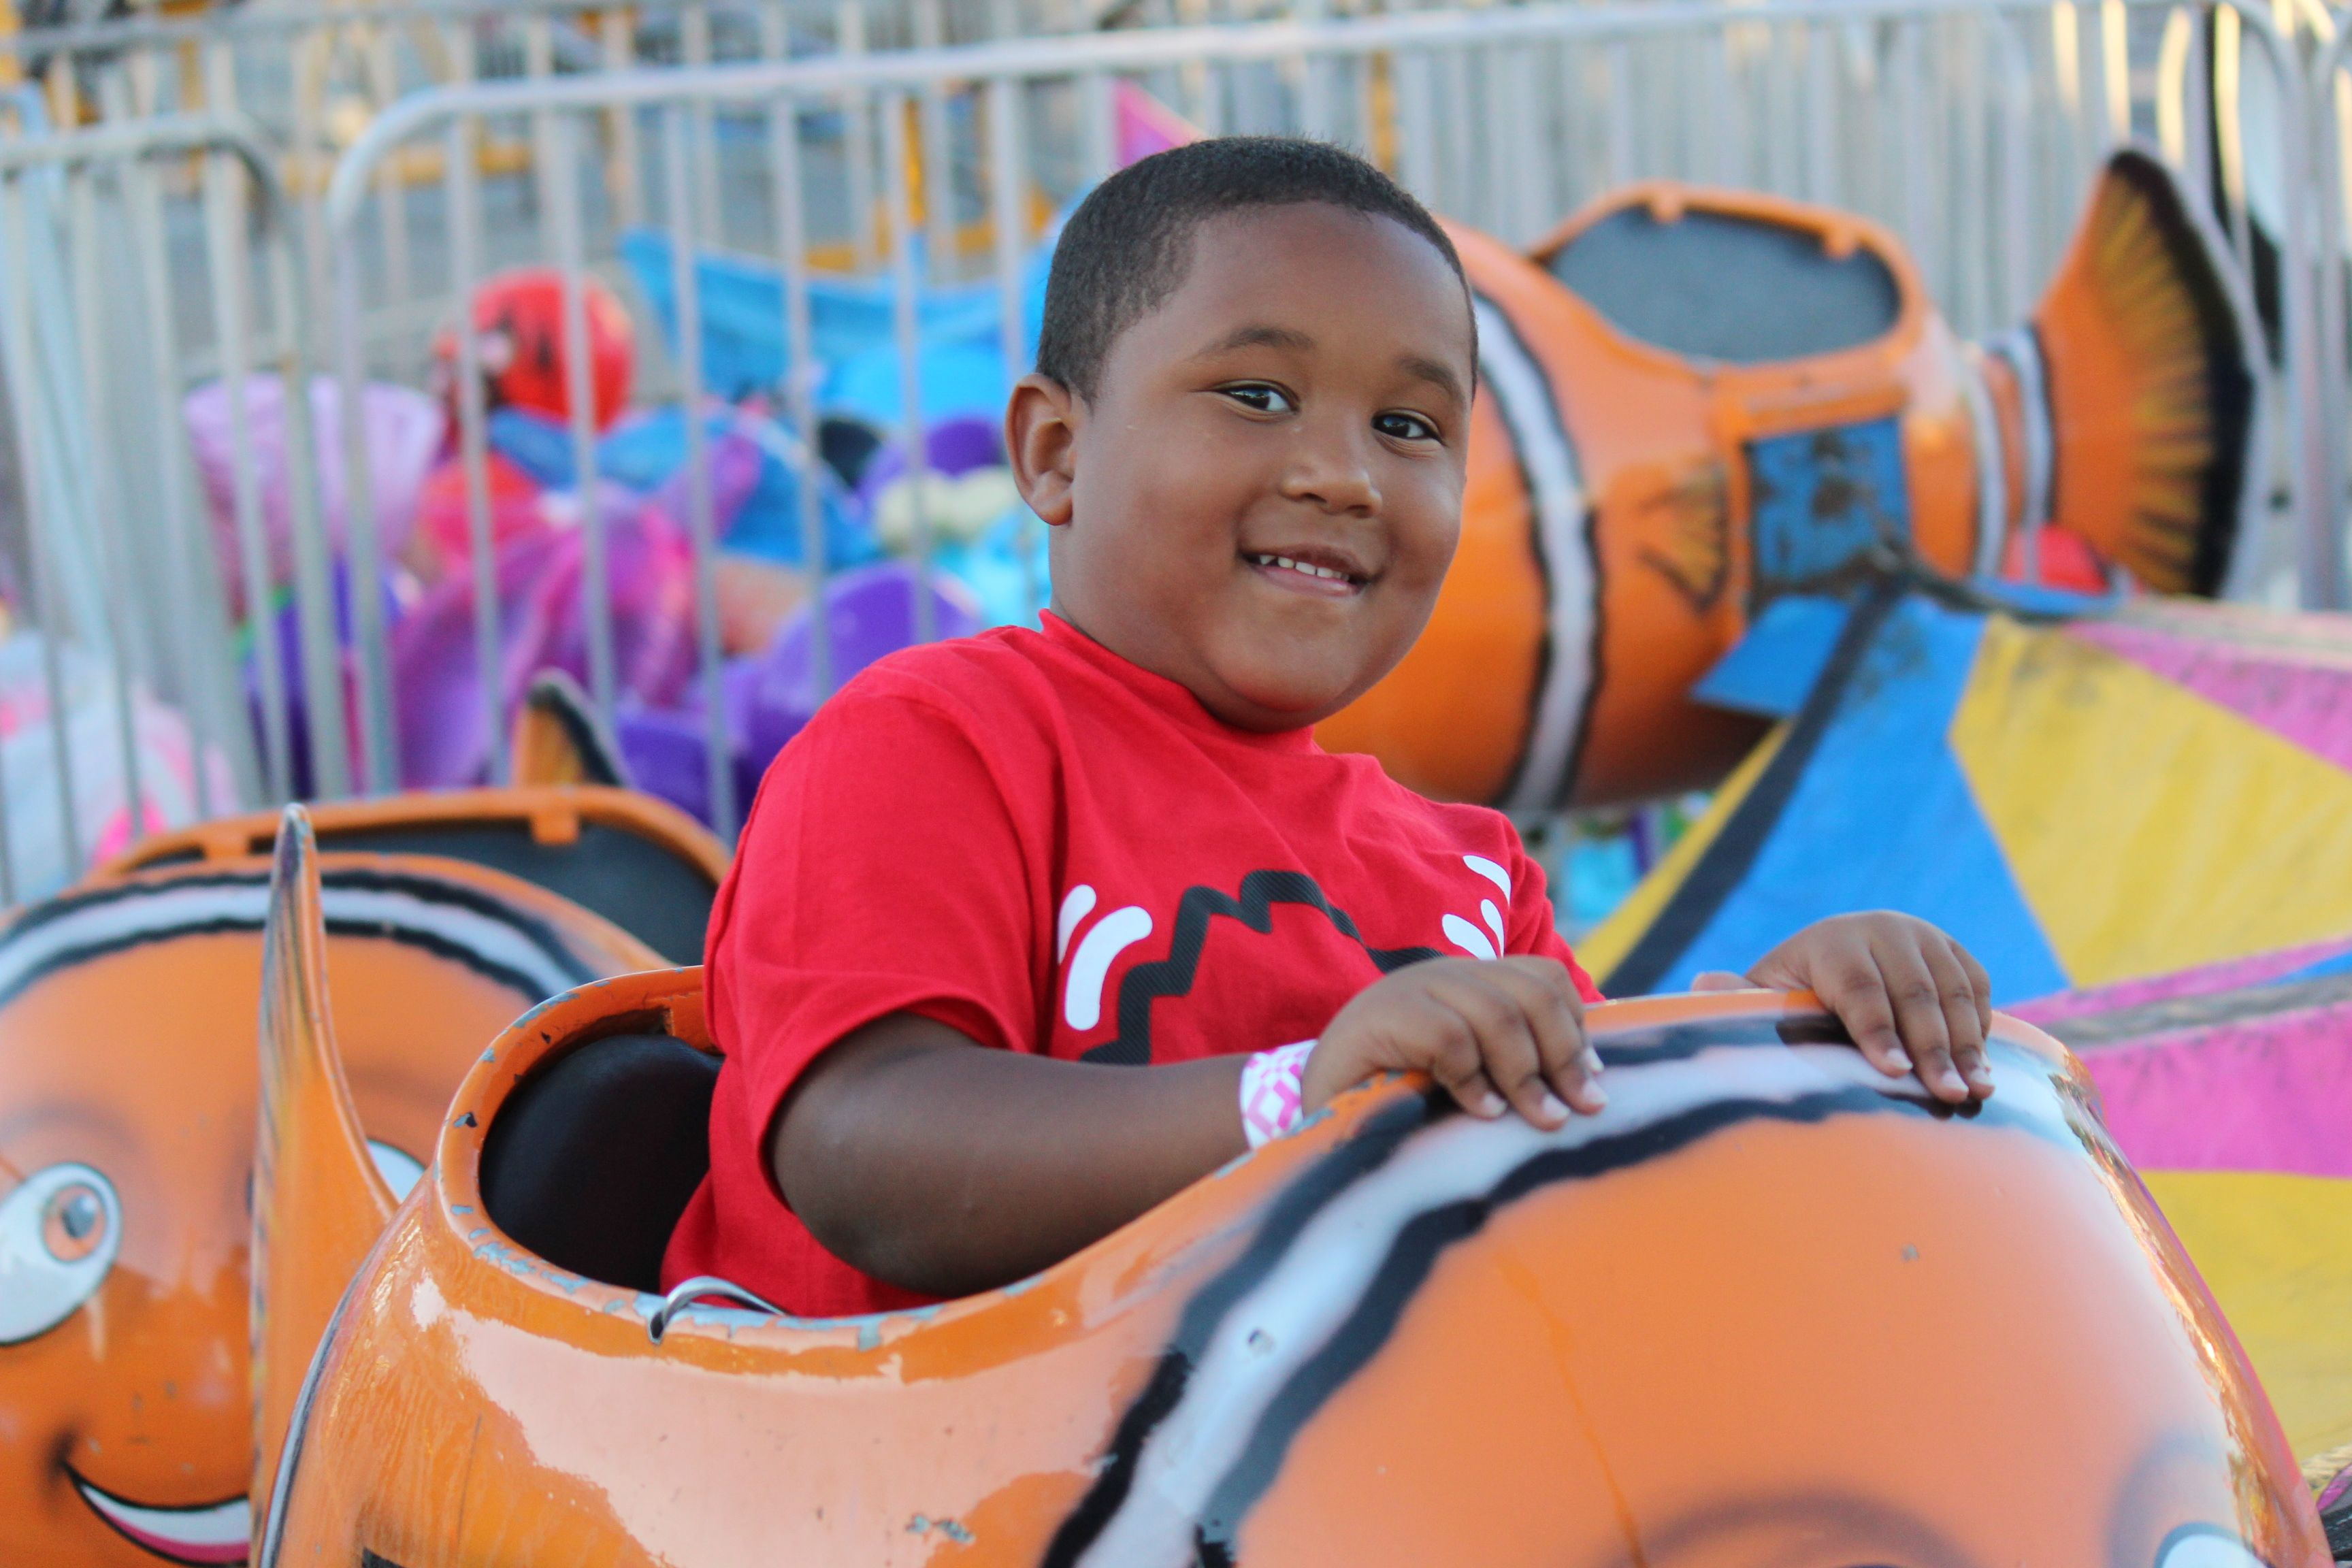 Hammond's Festival of the Lakes: Celebrating the Summer with Rides, Food, and Lakeside Entertainment